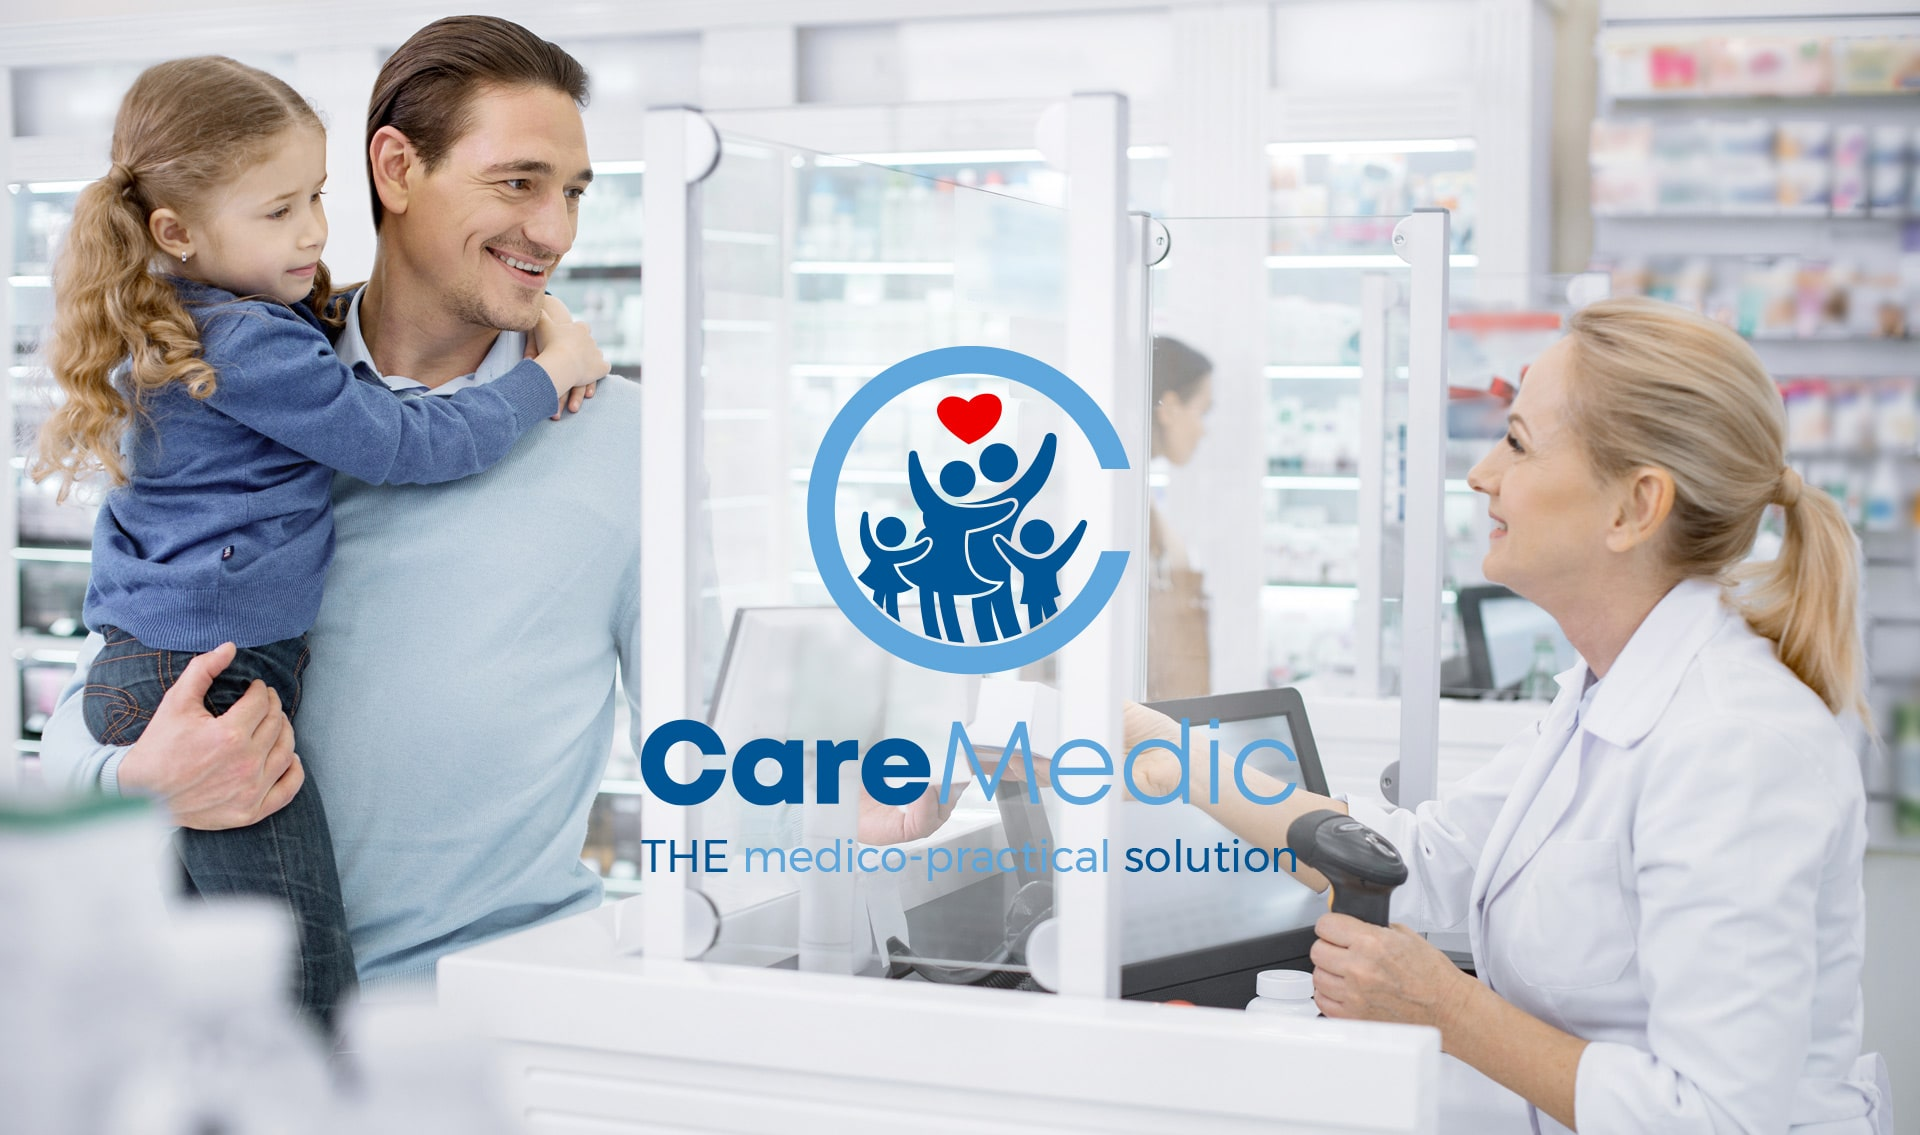 caremedic solution for pharmacists medico practical solution